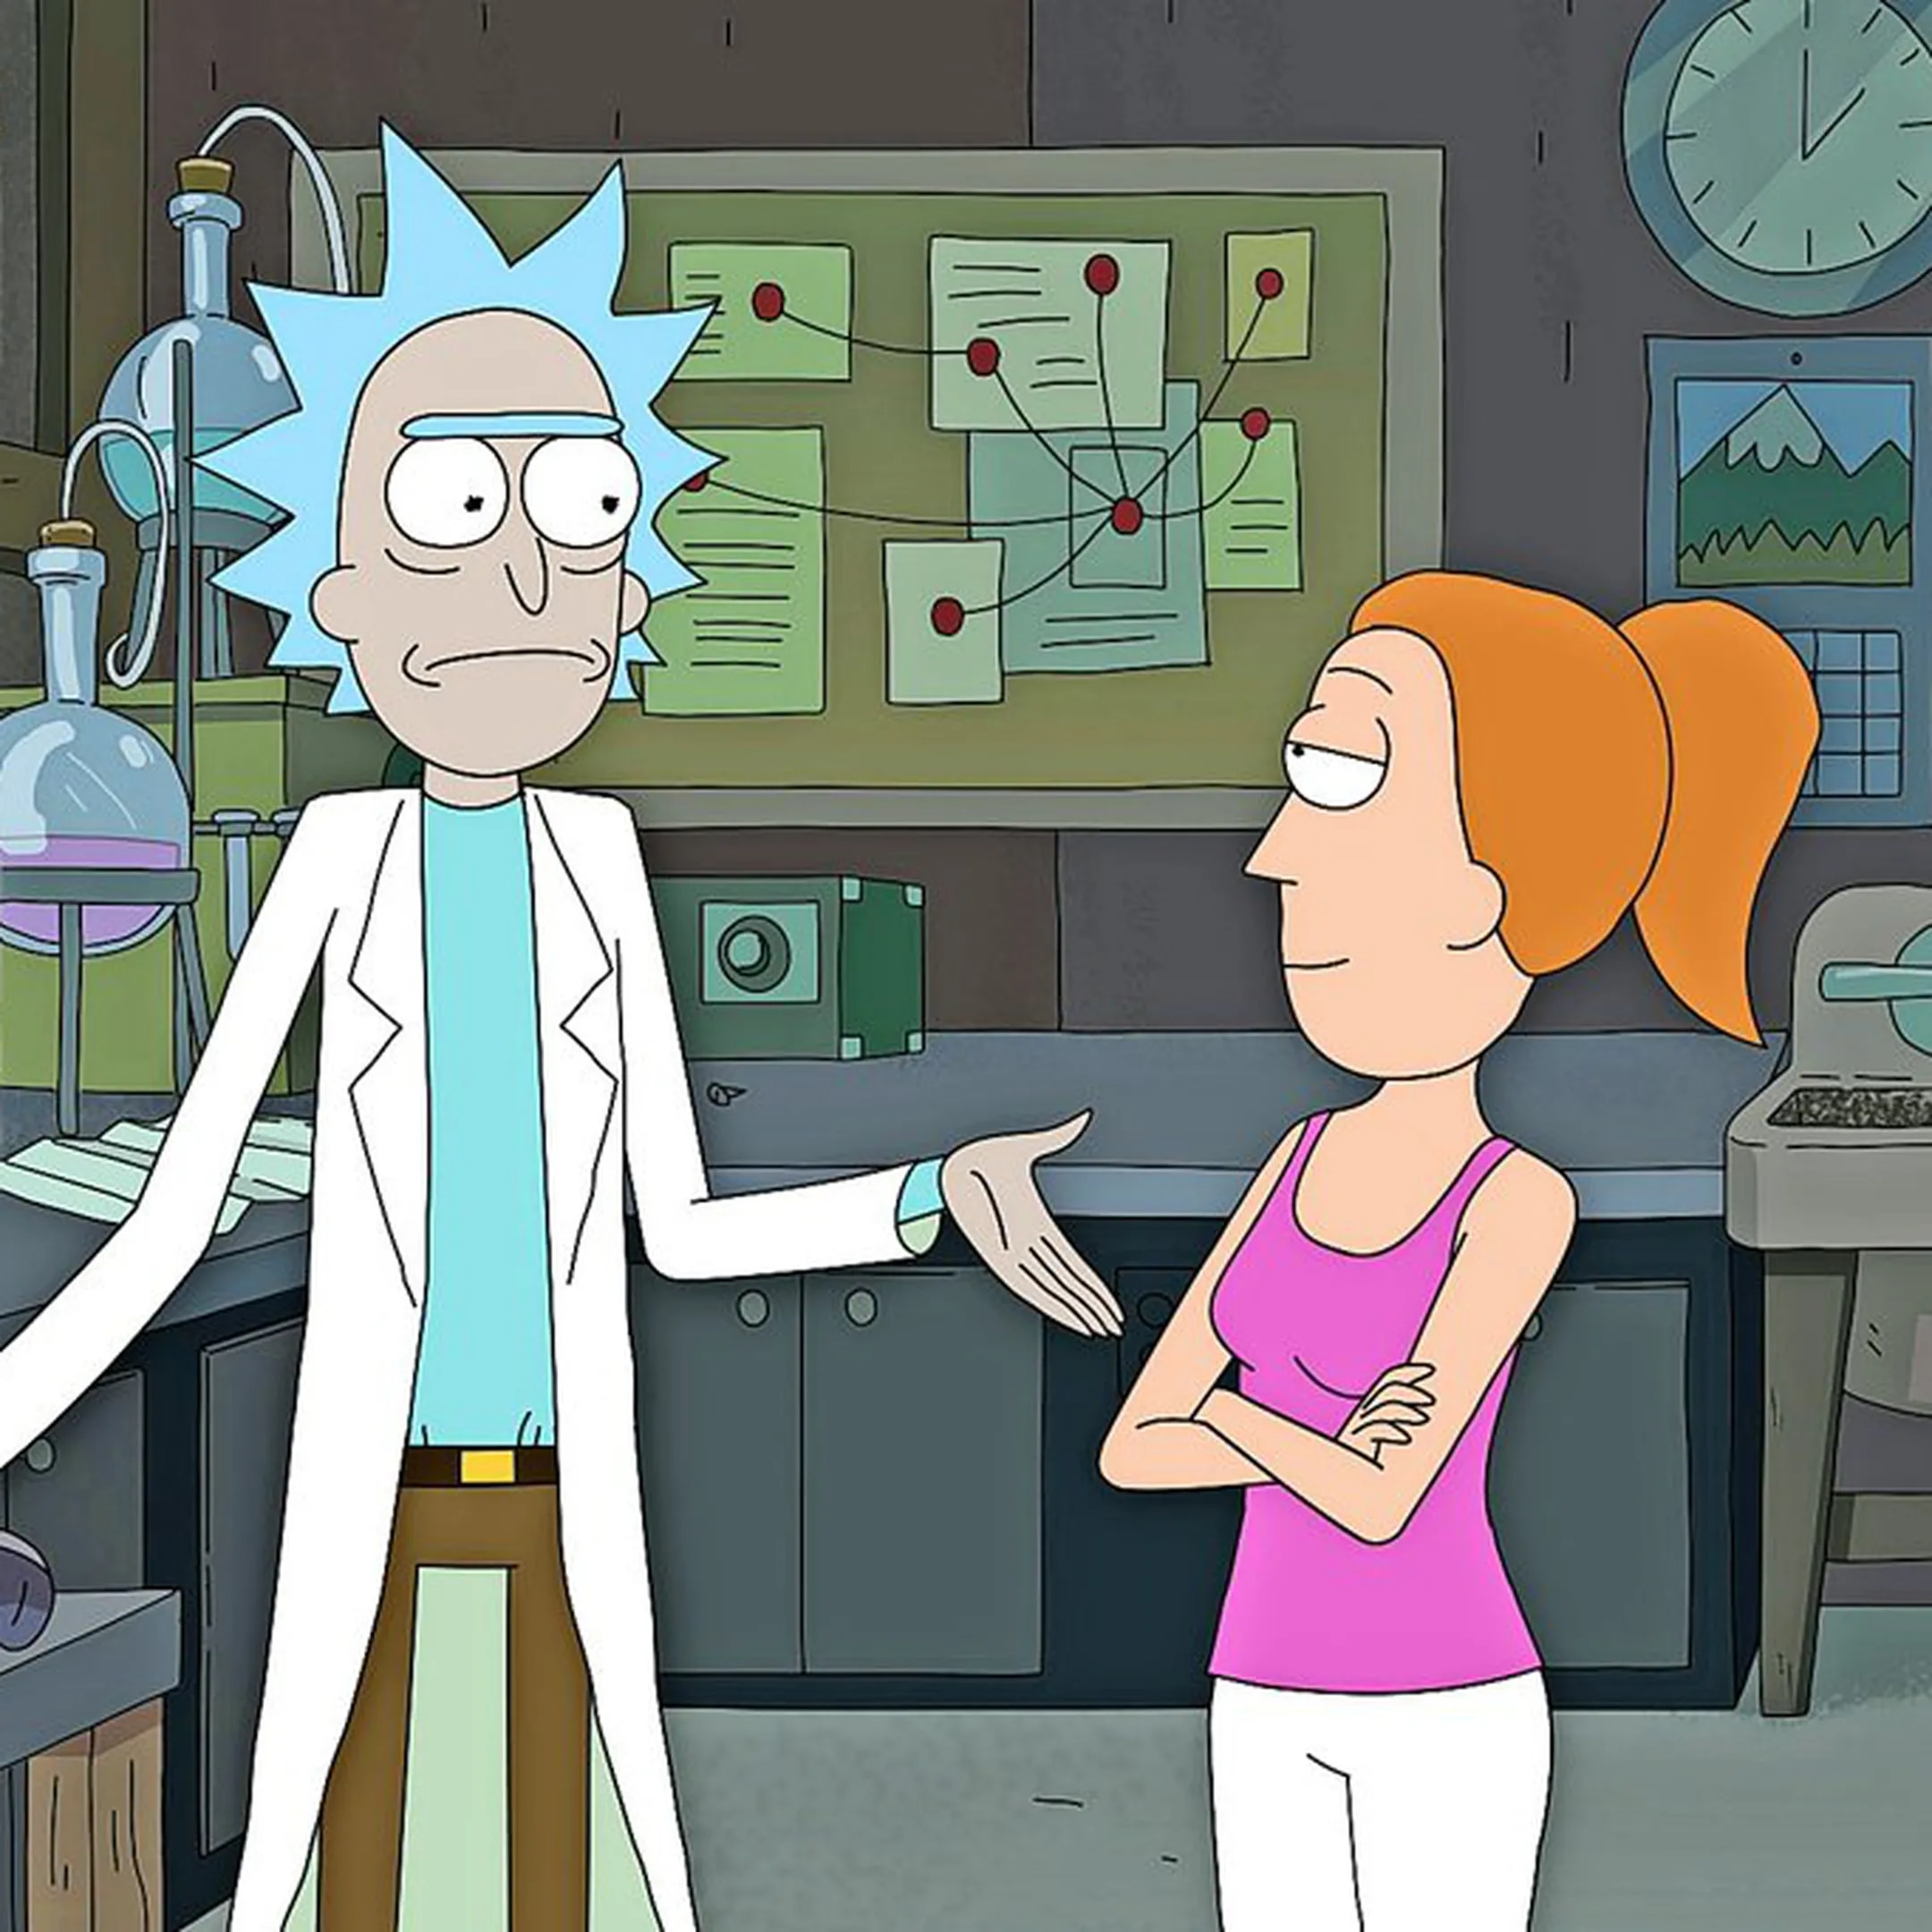 rick and morty staffel 4 deutsch stream